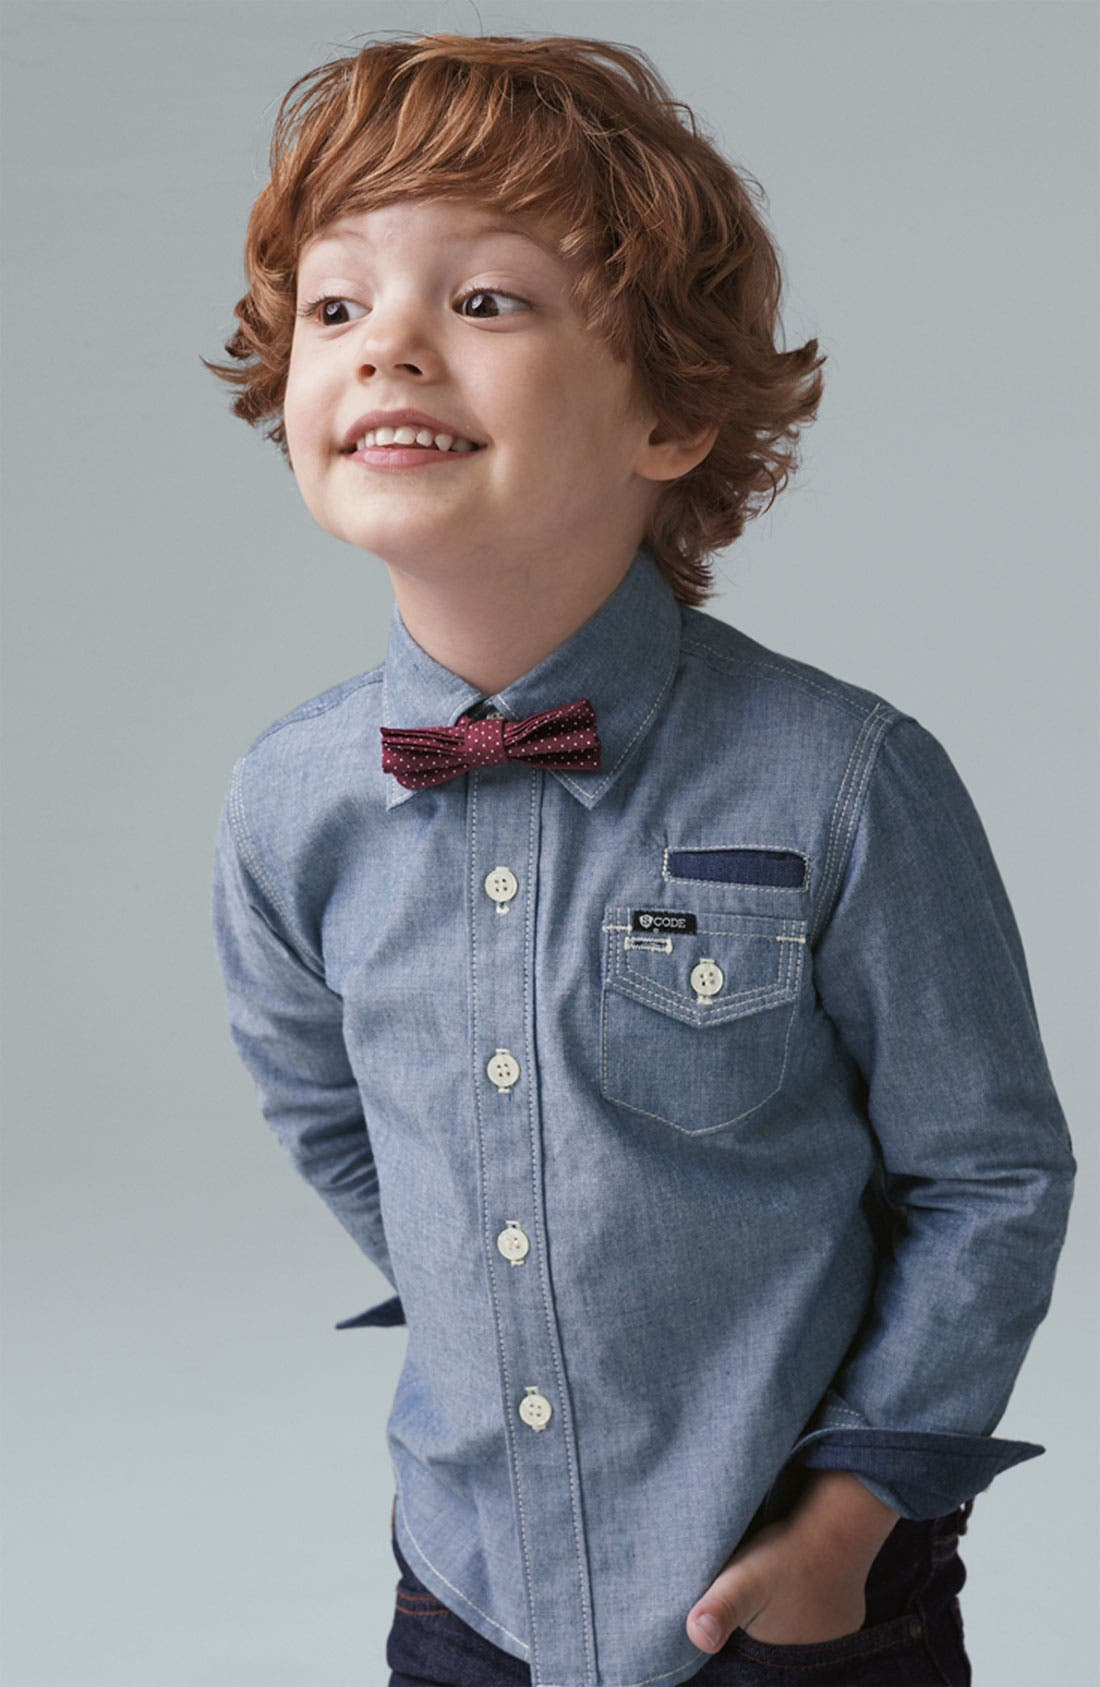 Main Image - Sovereign Code Shirt & Joe's Jeans (Toddler)